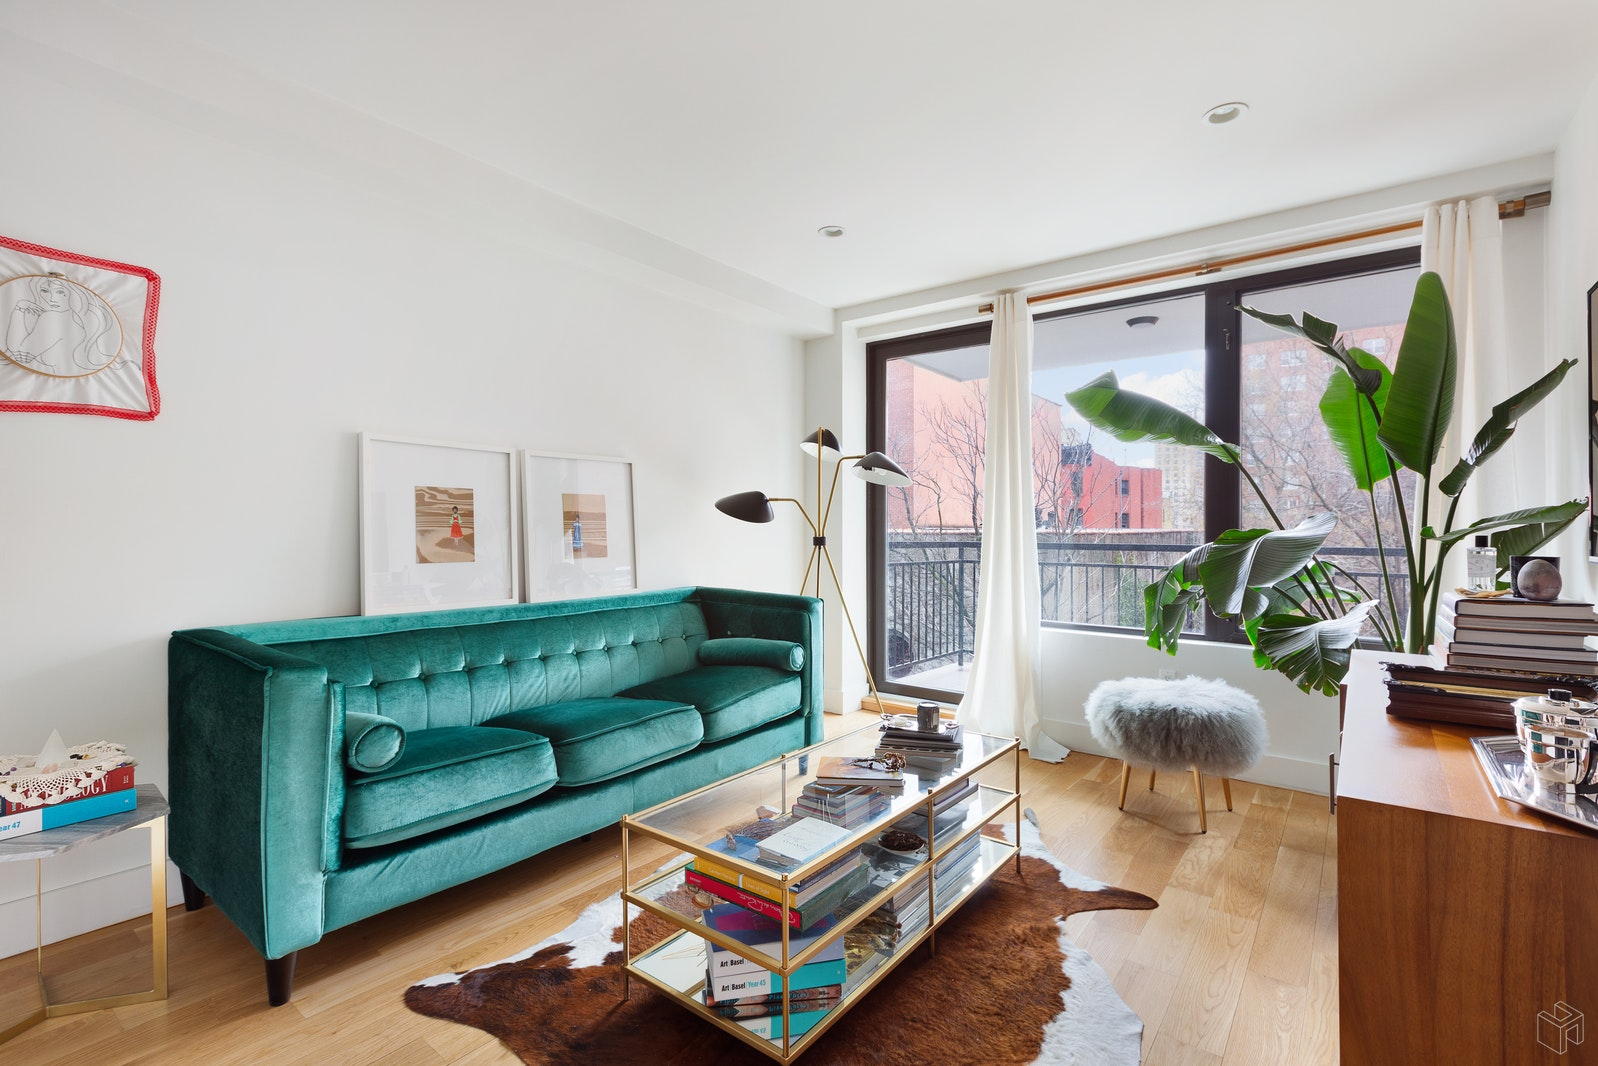 324 EAST 4TH STREET 5B, East Village, $825,000, Web #: 19508597